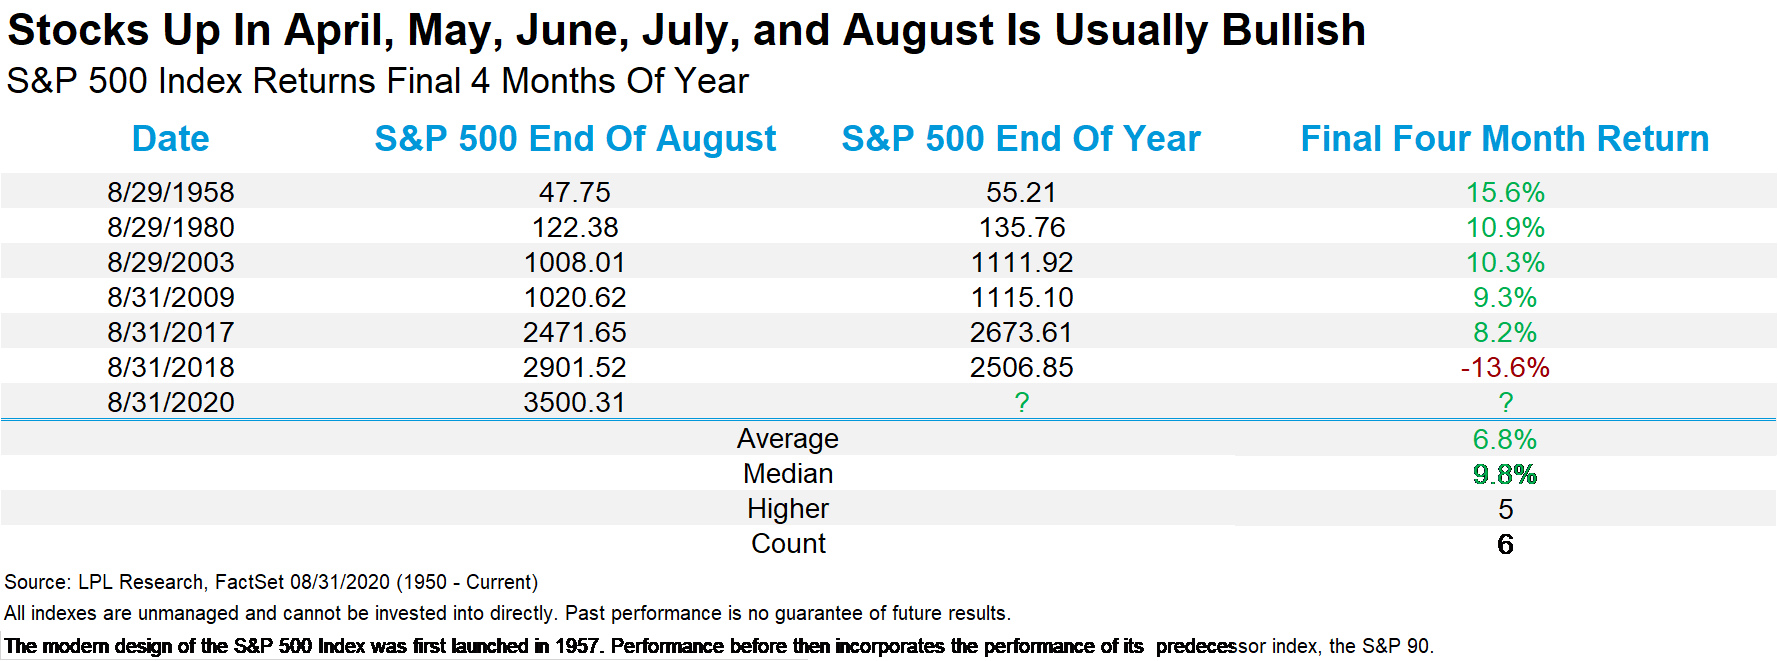 Stocks Up in April, May, June, July, and August Is Usually Bullish